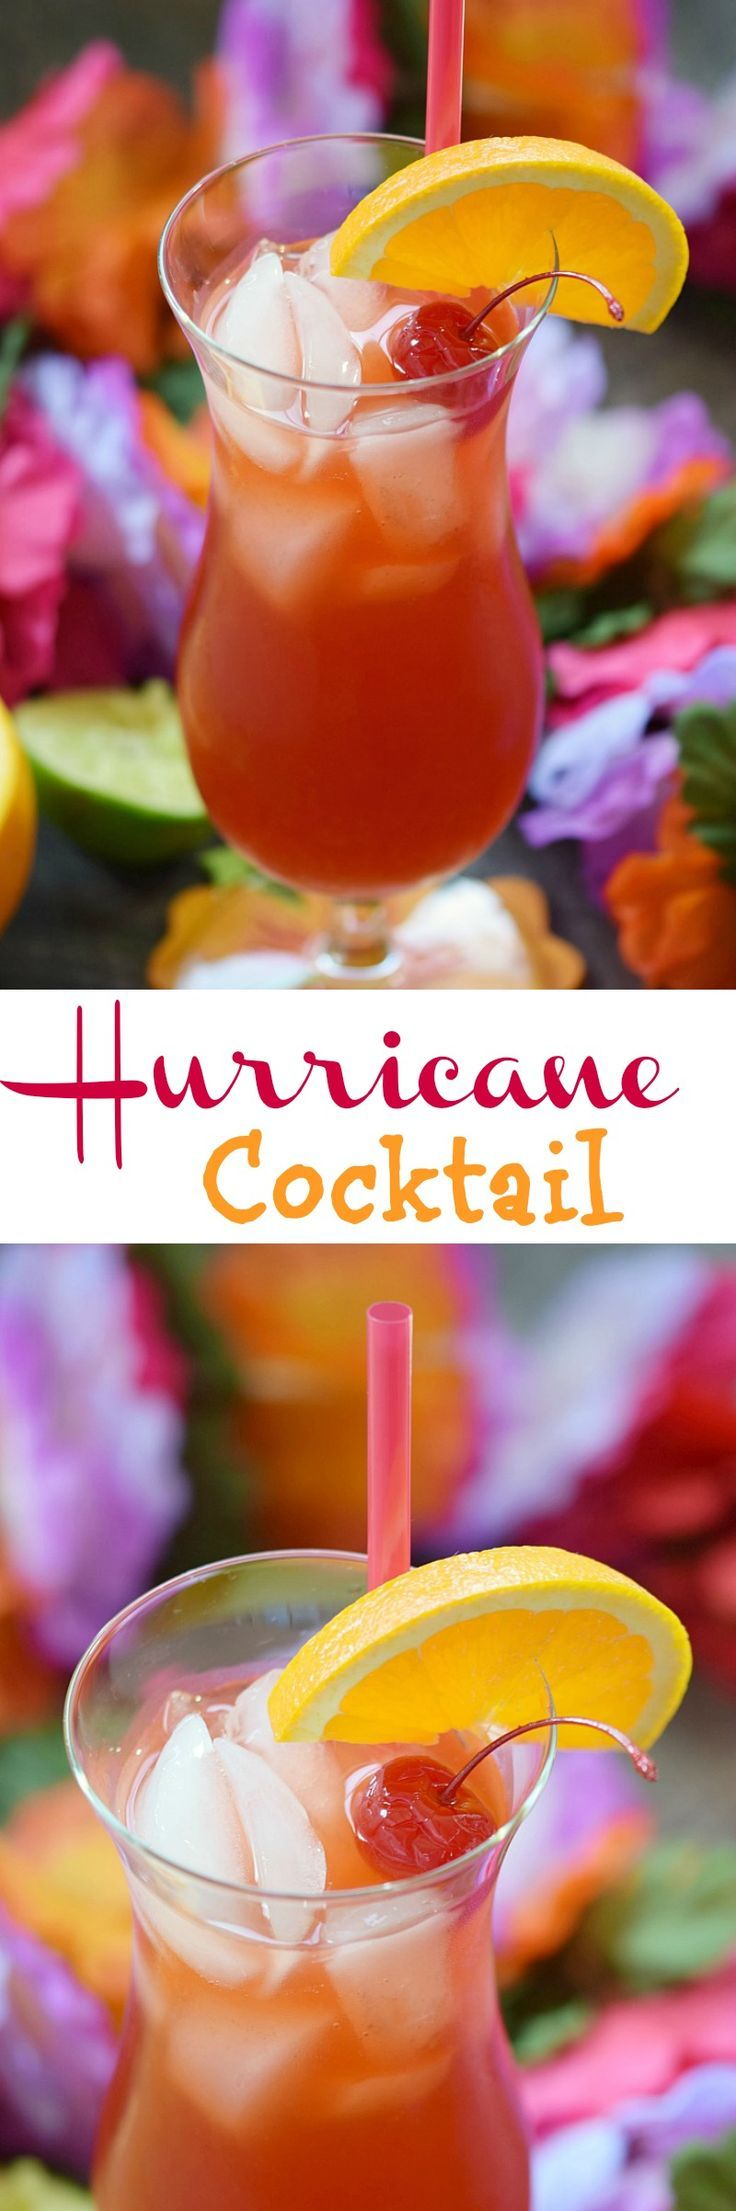 This Hurricane Cocktail seems tame at first with it's fruity flavors, then turns into a full-blown Category 5 if you let your guard down   cookingwithcurls.com